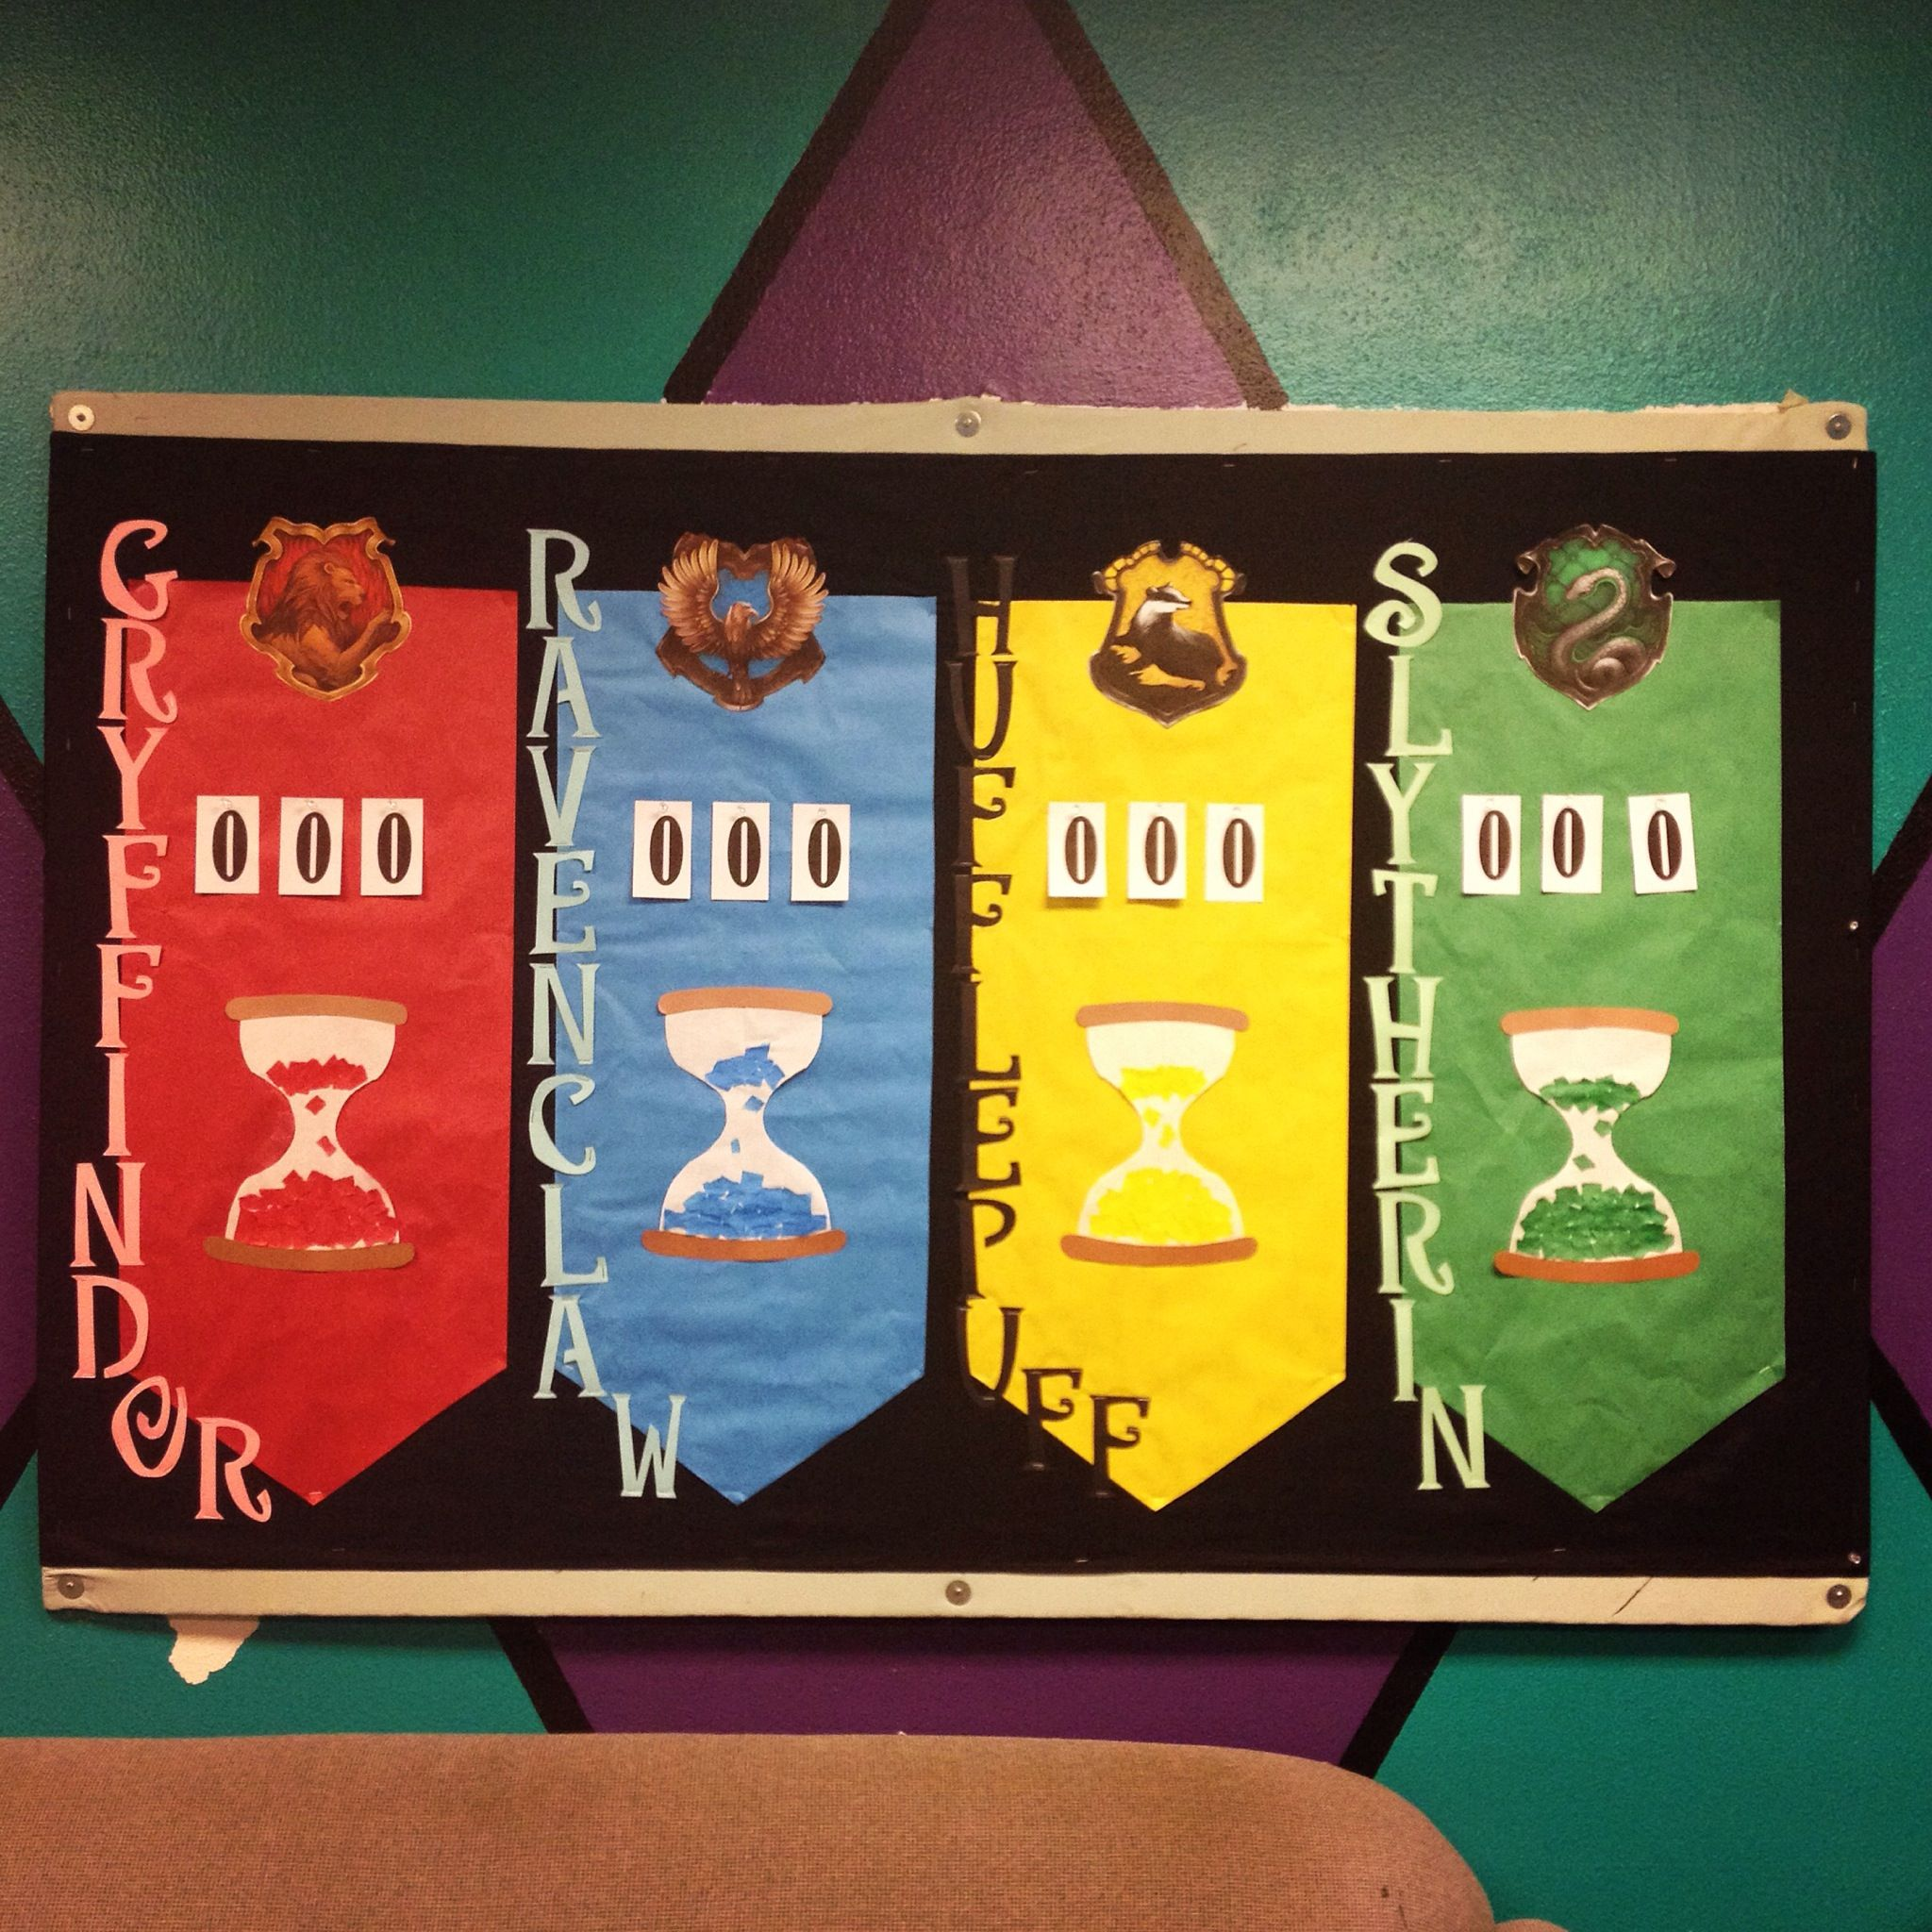 Harry potter bulletin board signs google search also best houses   school images on pinterest ron clark classroom rh